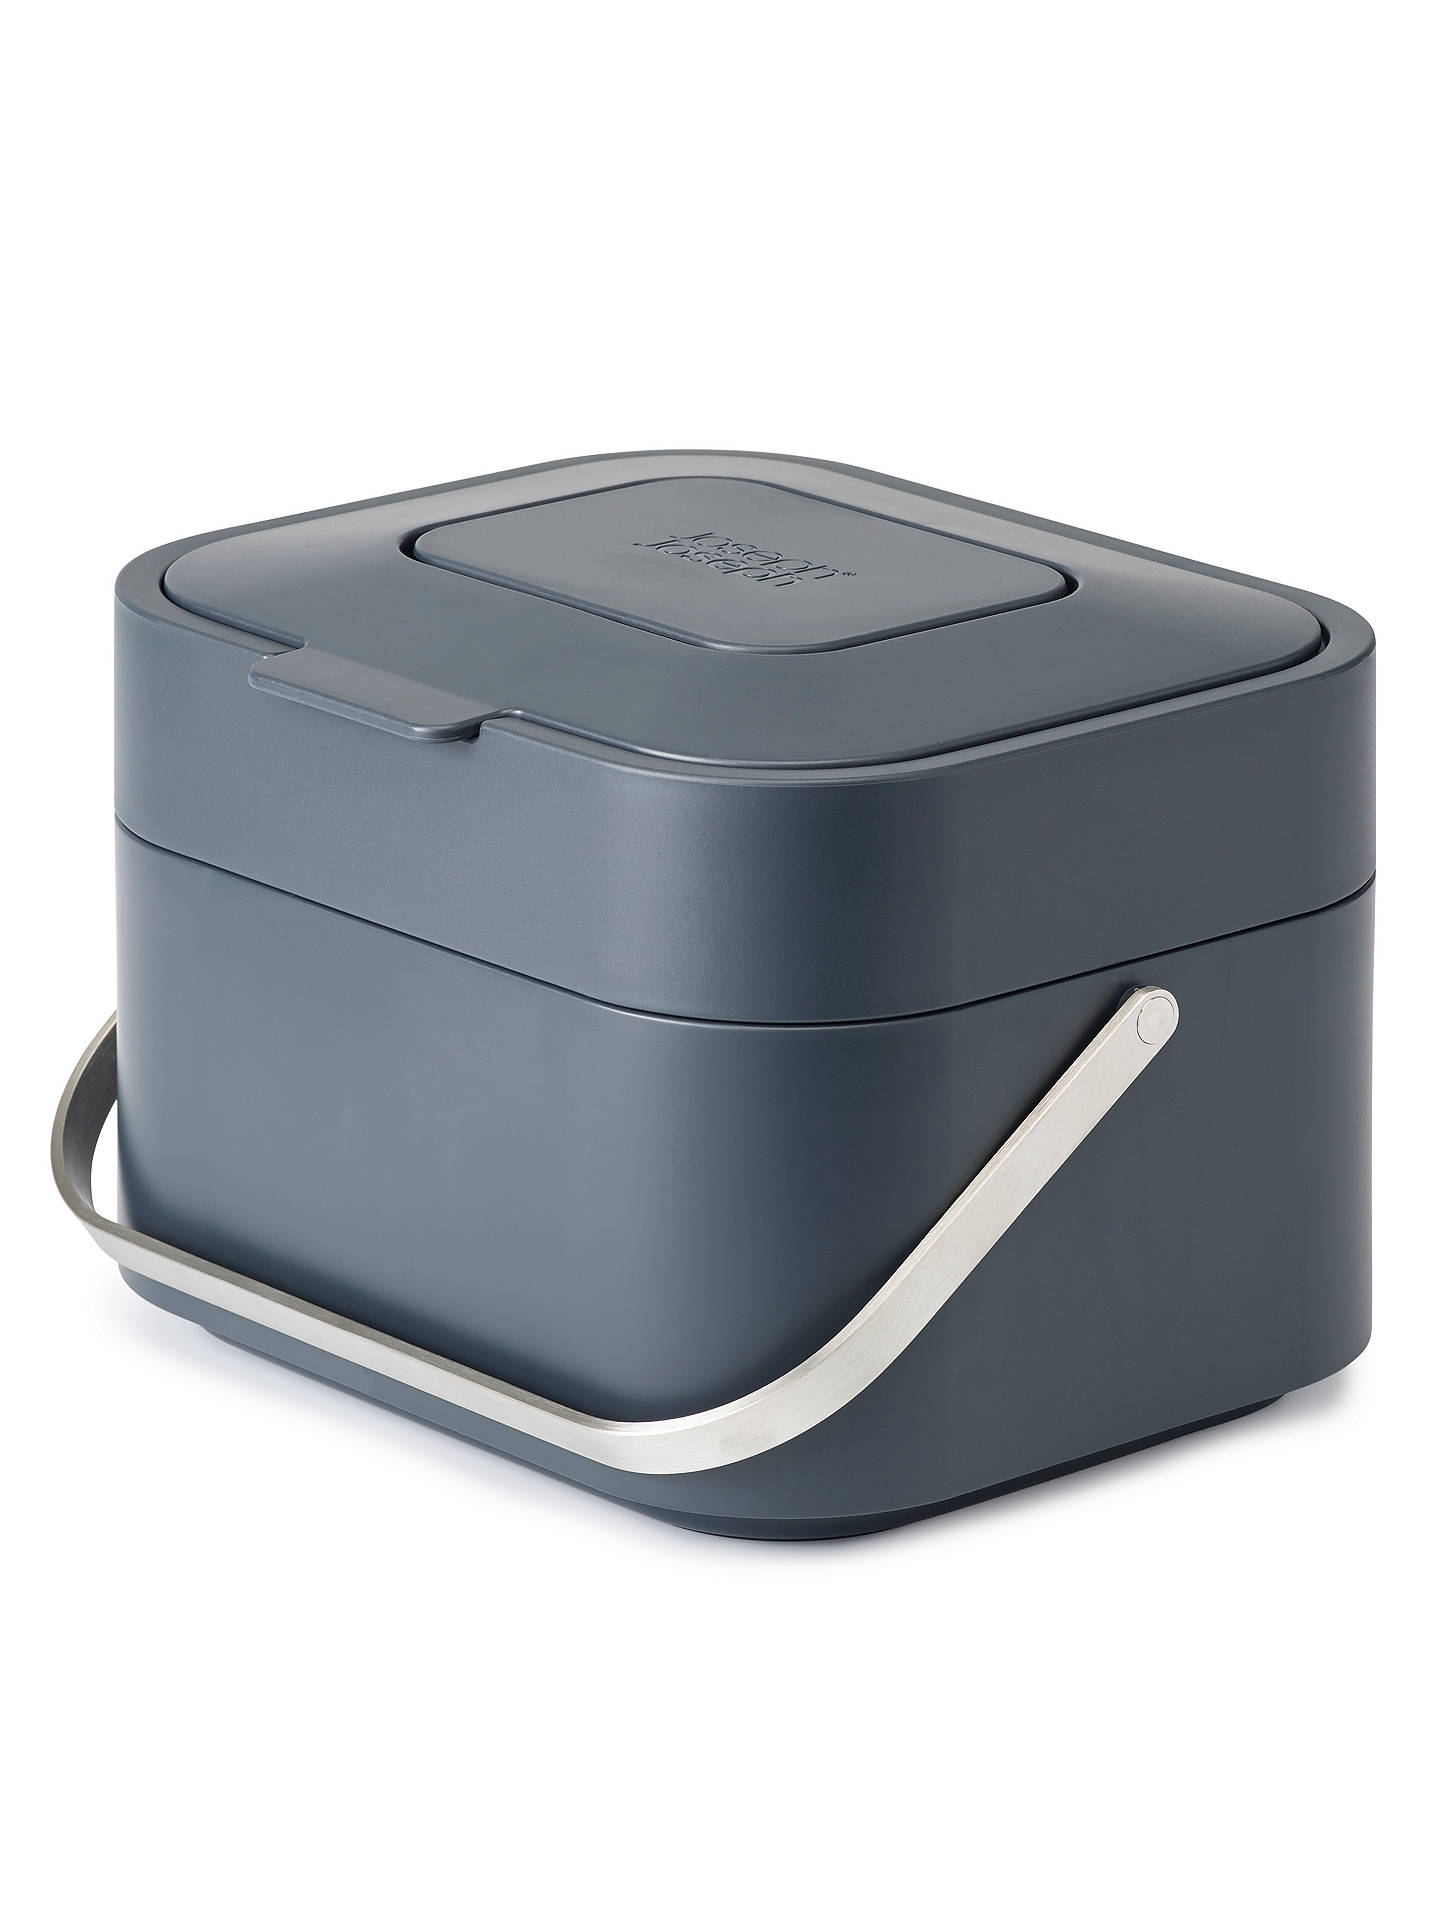 BuyJoseph Joseph Stack Food Waste Caddy, Grey, 4L Online at johnlewis.com